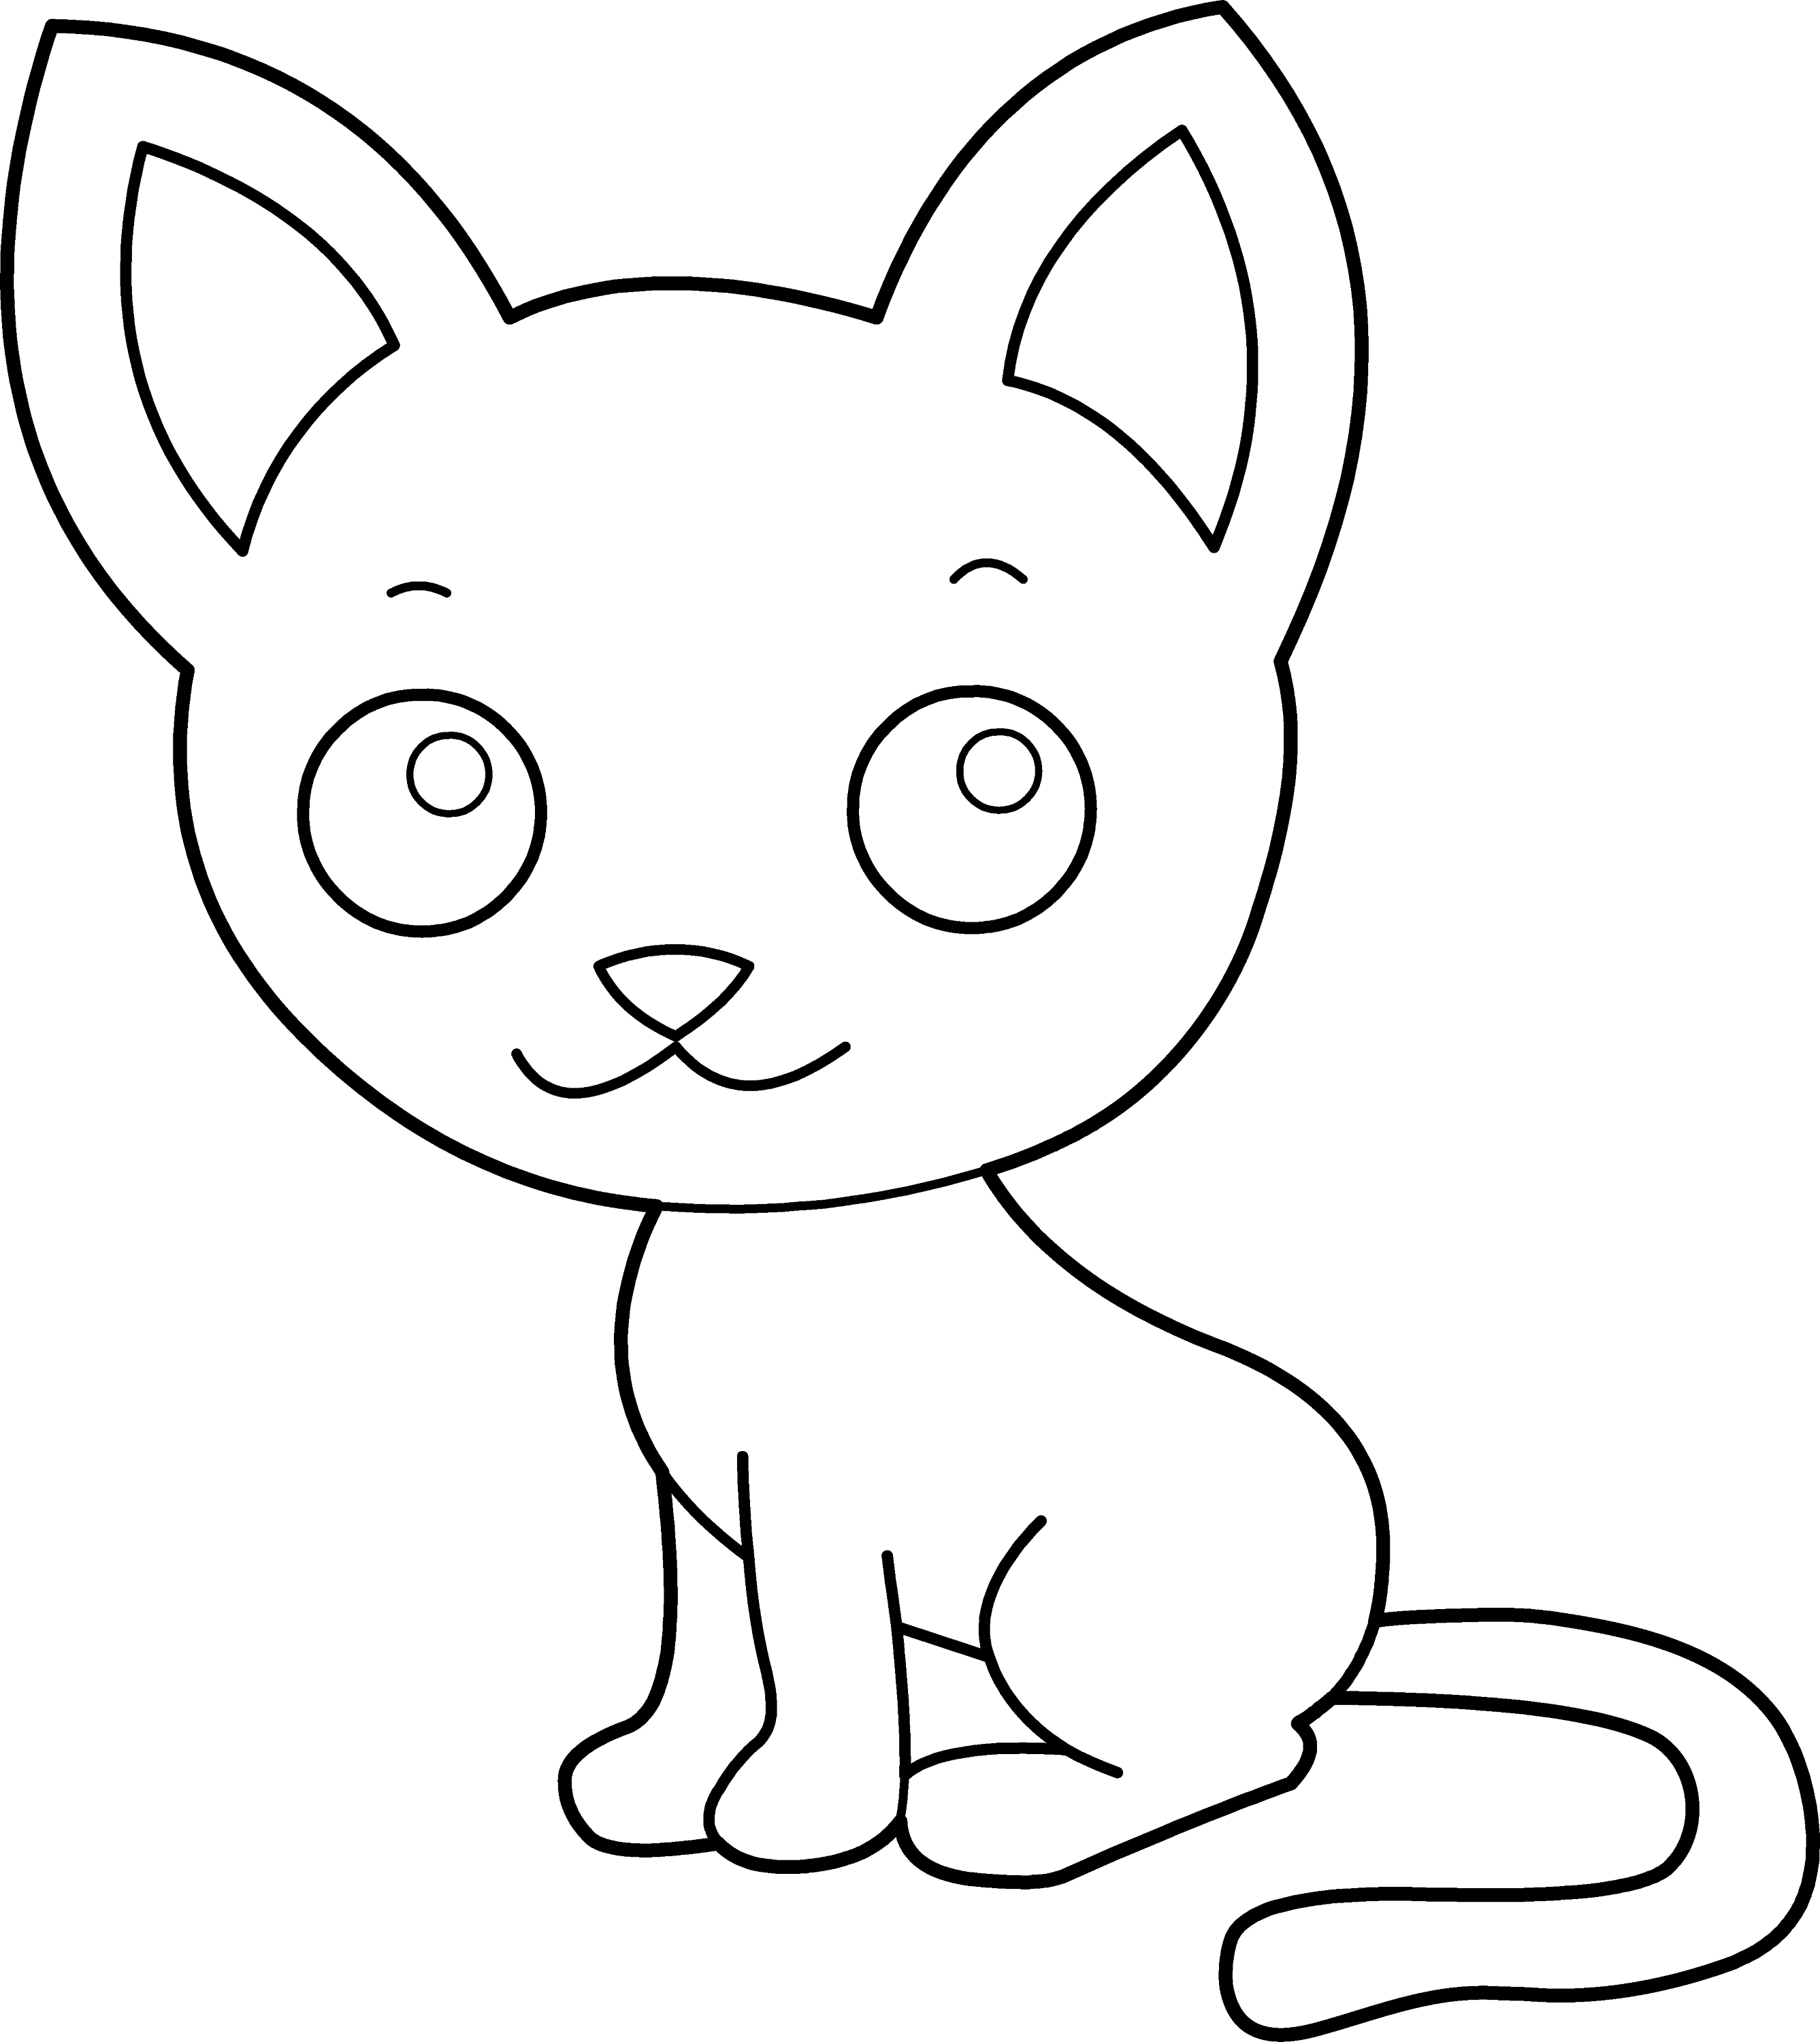 kitty cat printable coloring pages kitty cat a beautiful female kitty cat in girly posture cat pages coloring printable kitty